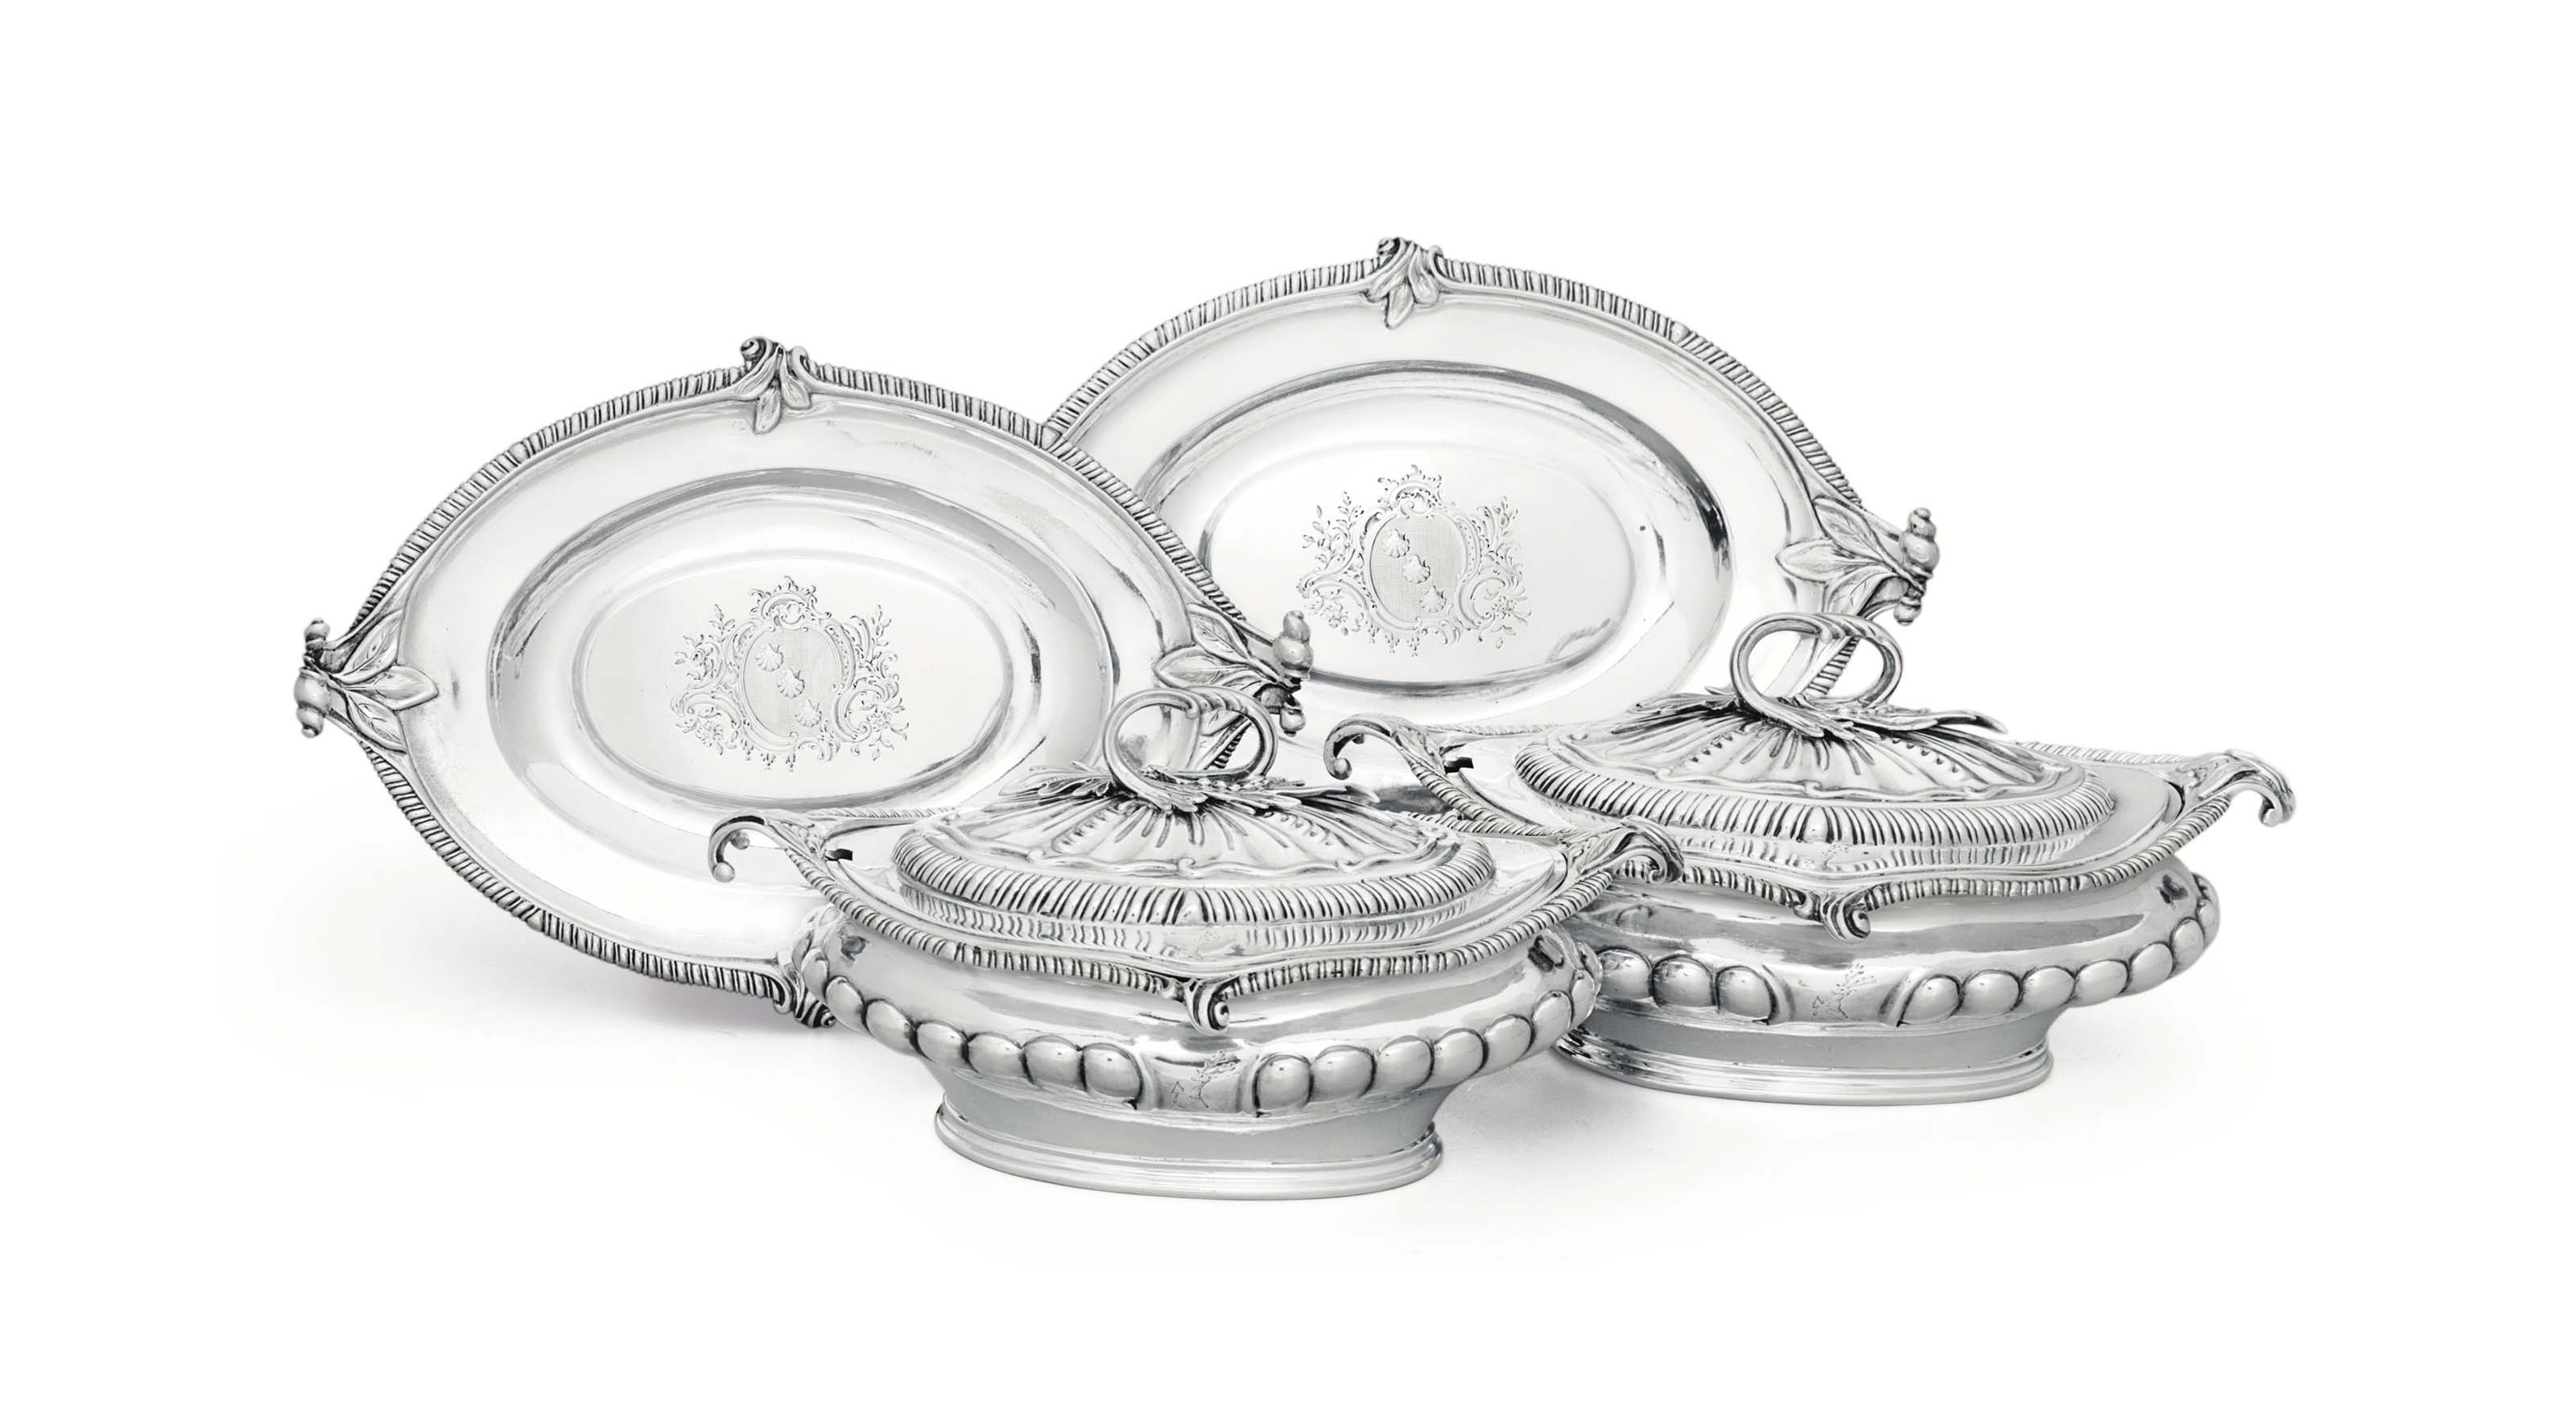 A PAIR OF GEORGE III SILVER SAUCE TUREENS AND STANDS